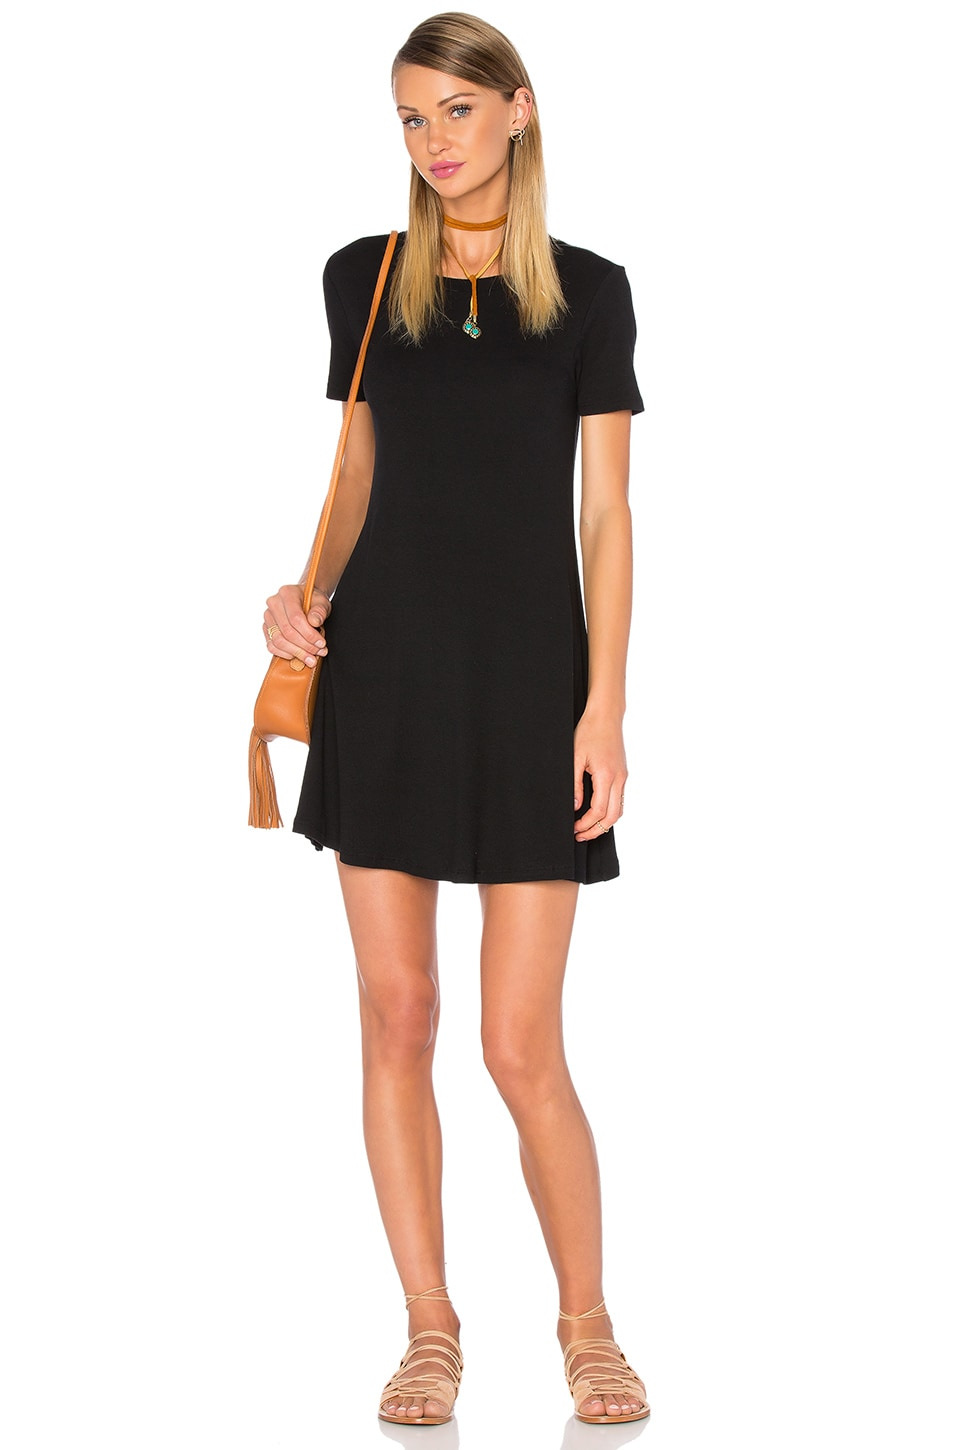 Privacy Please Caldwell Dress in Black